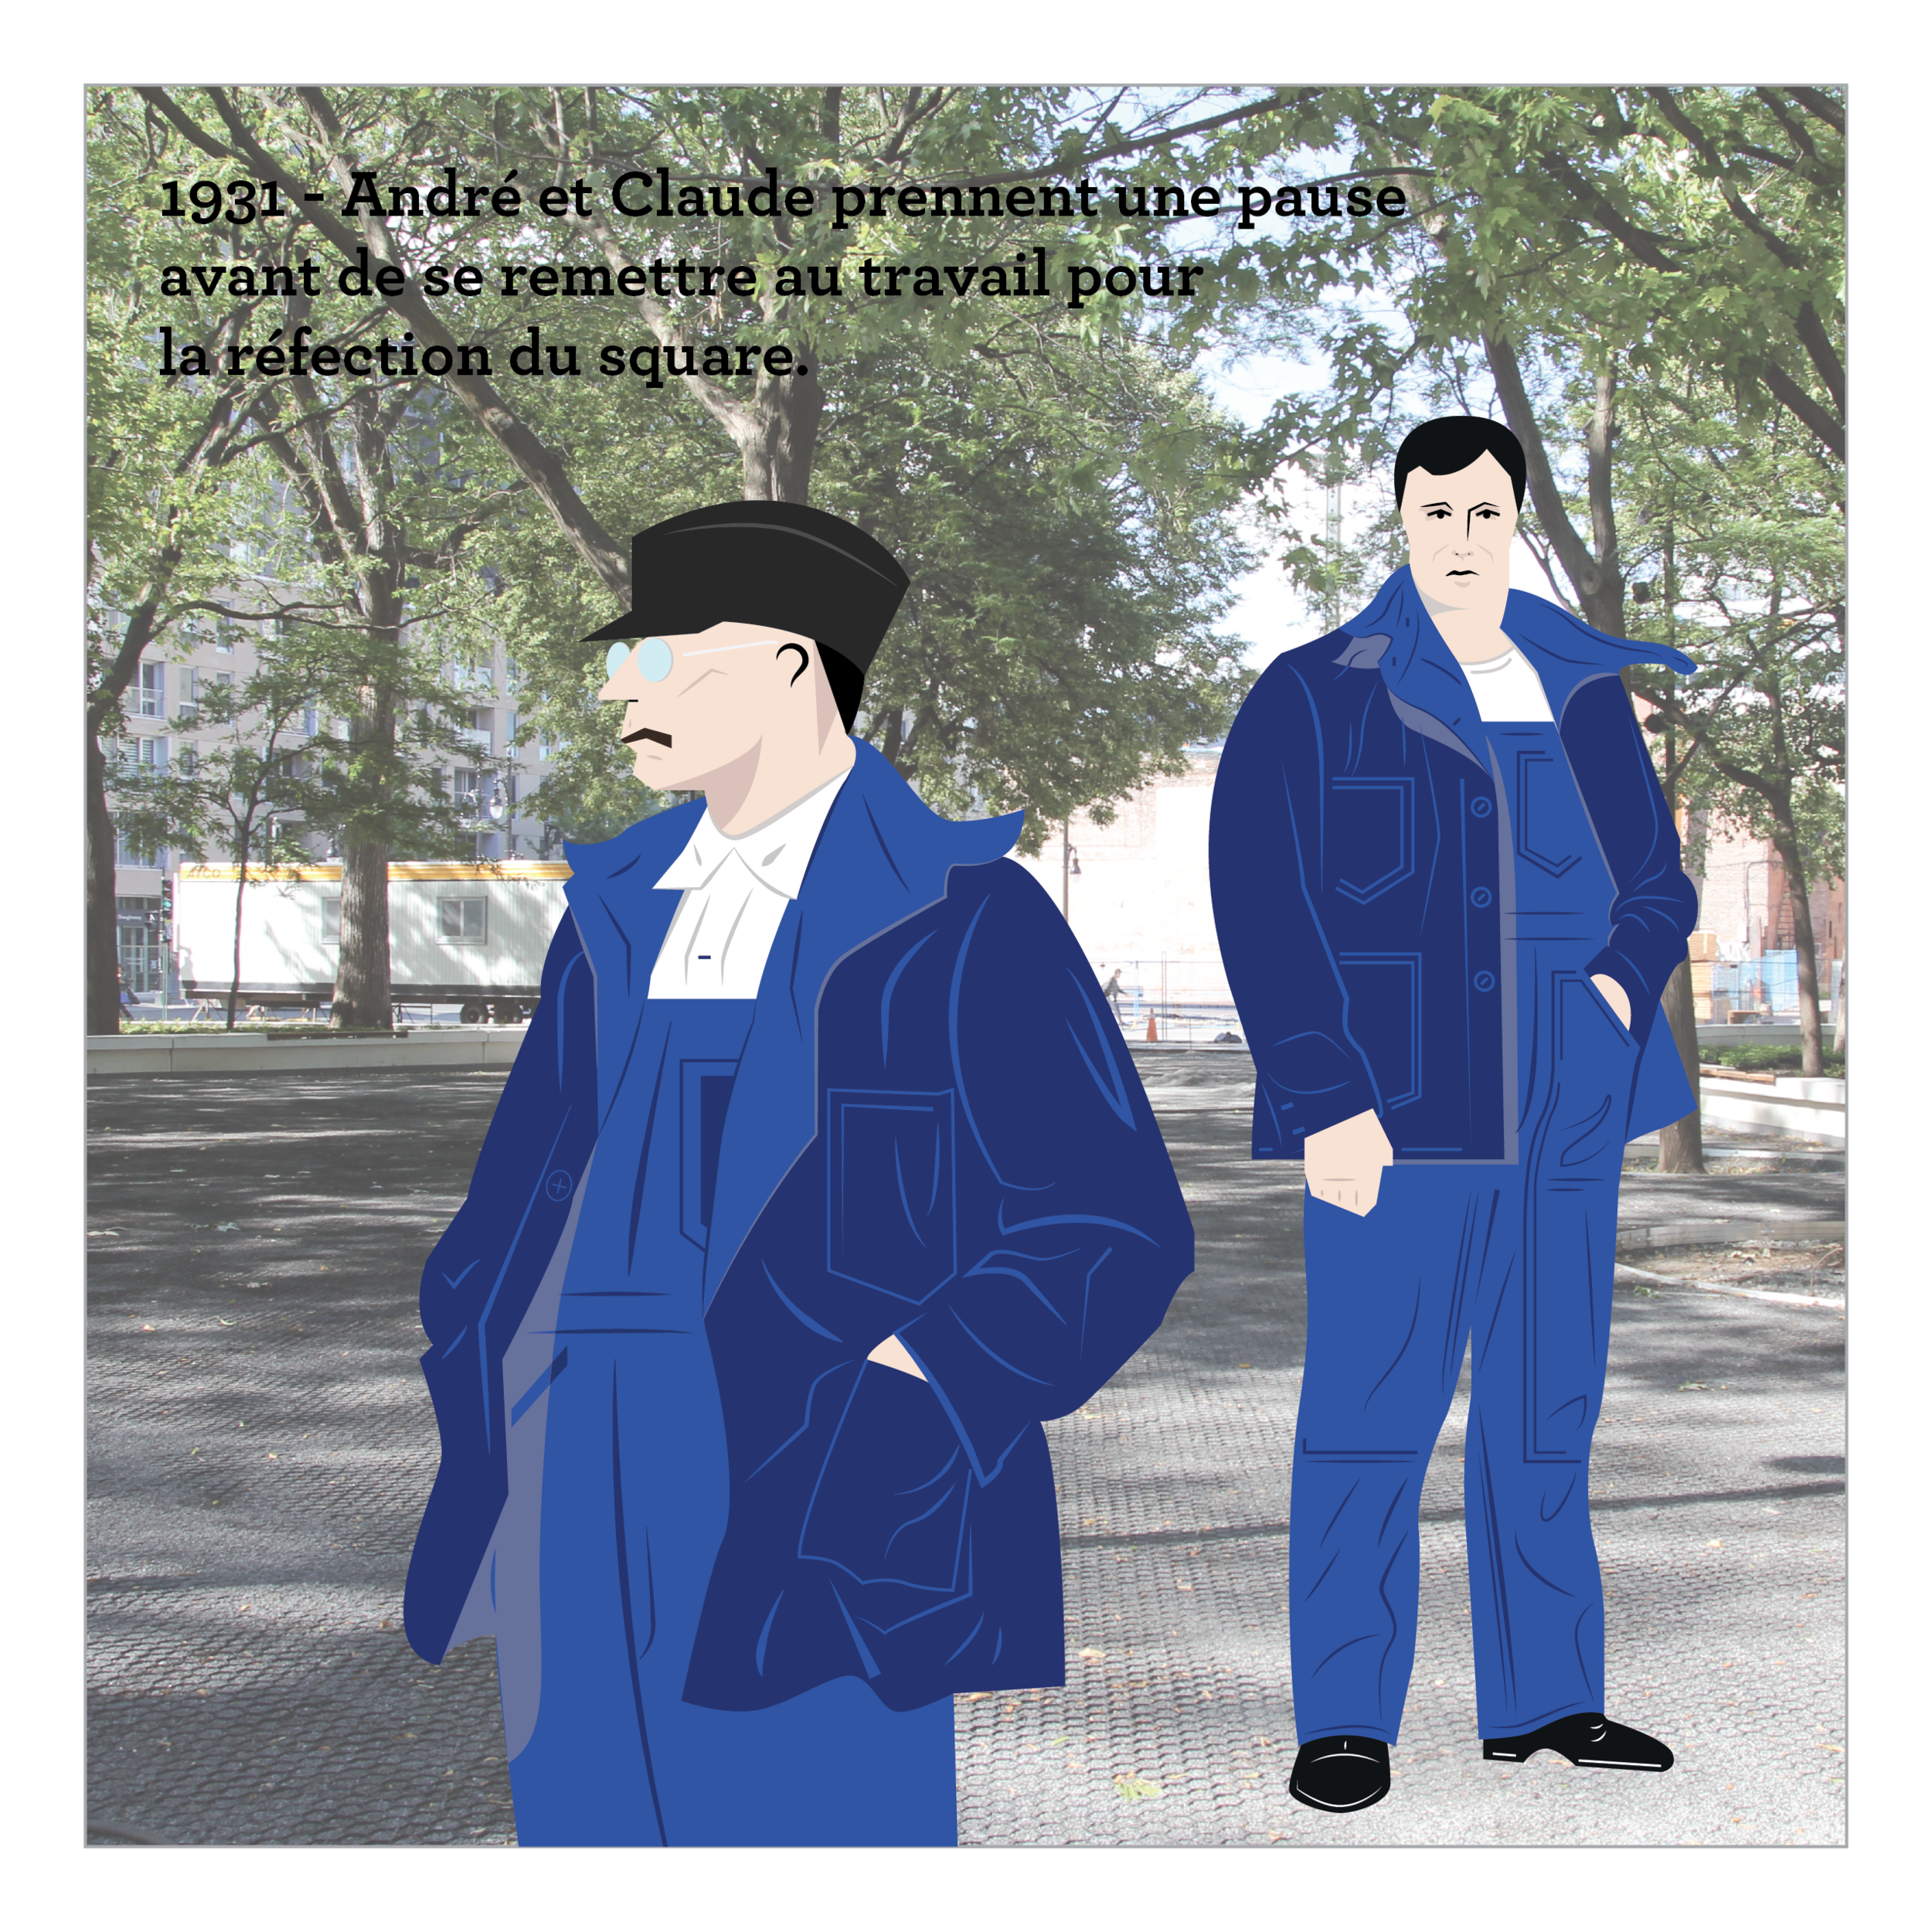 Cabot-defileStoryboardVueVisionneuse-030715-04.png